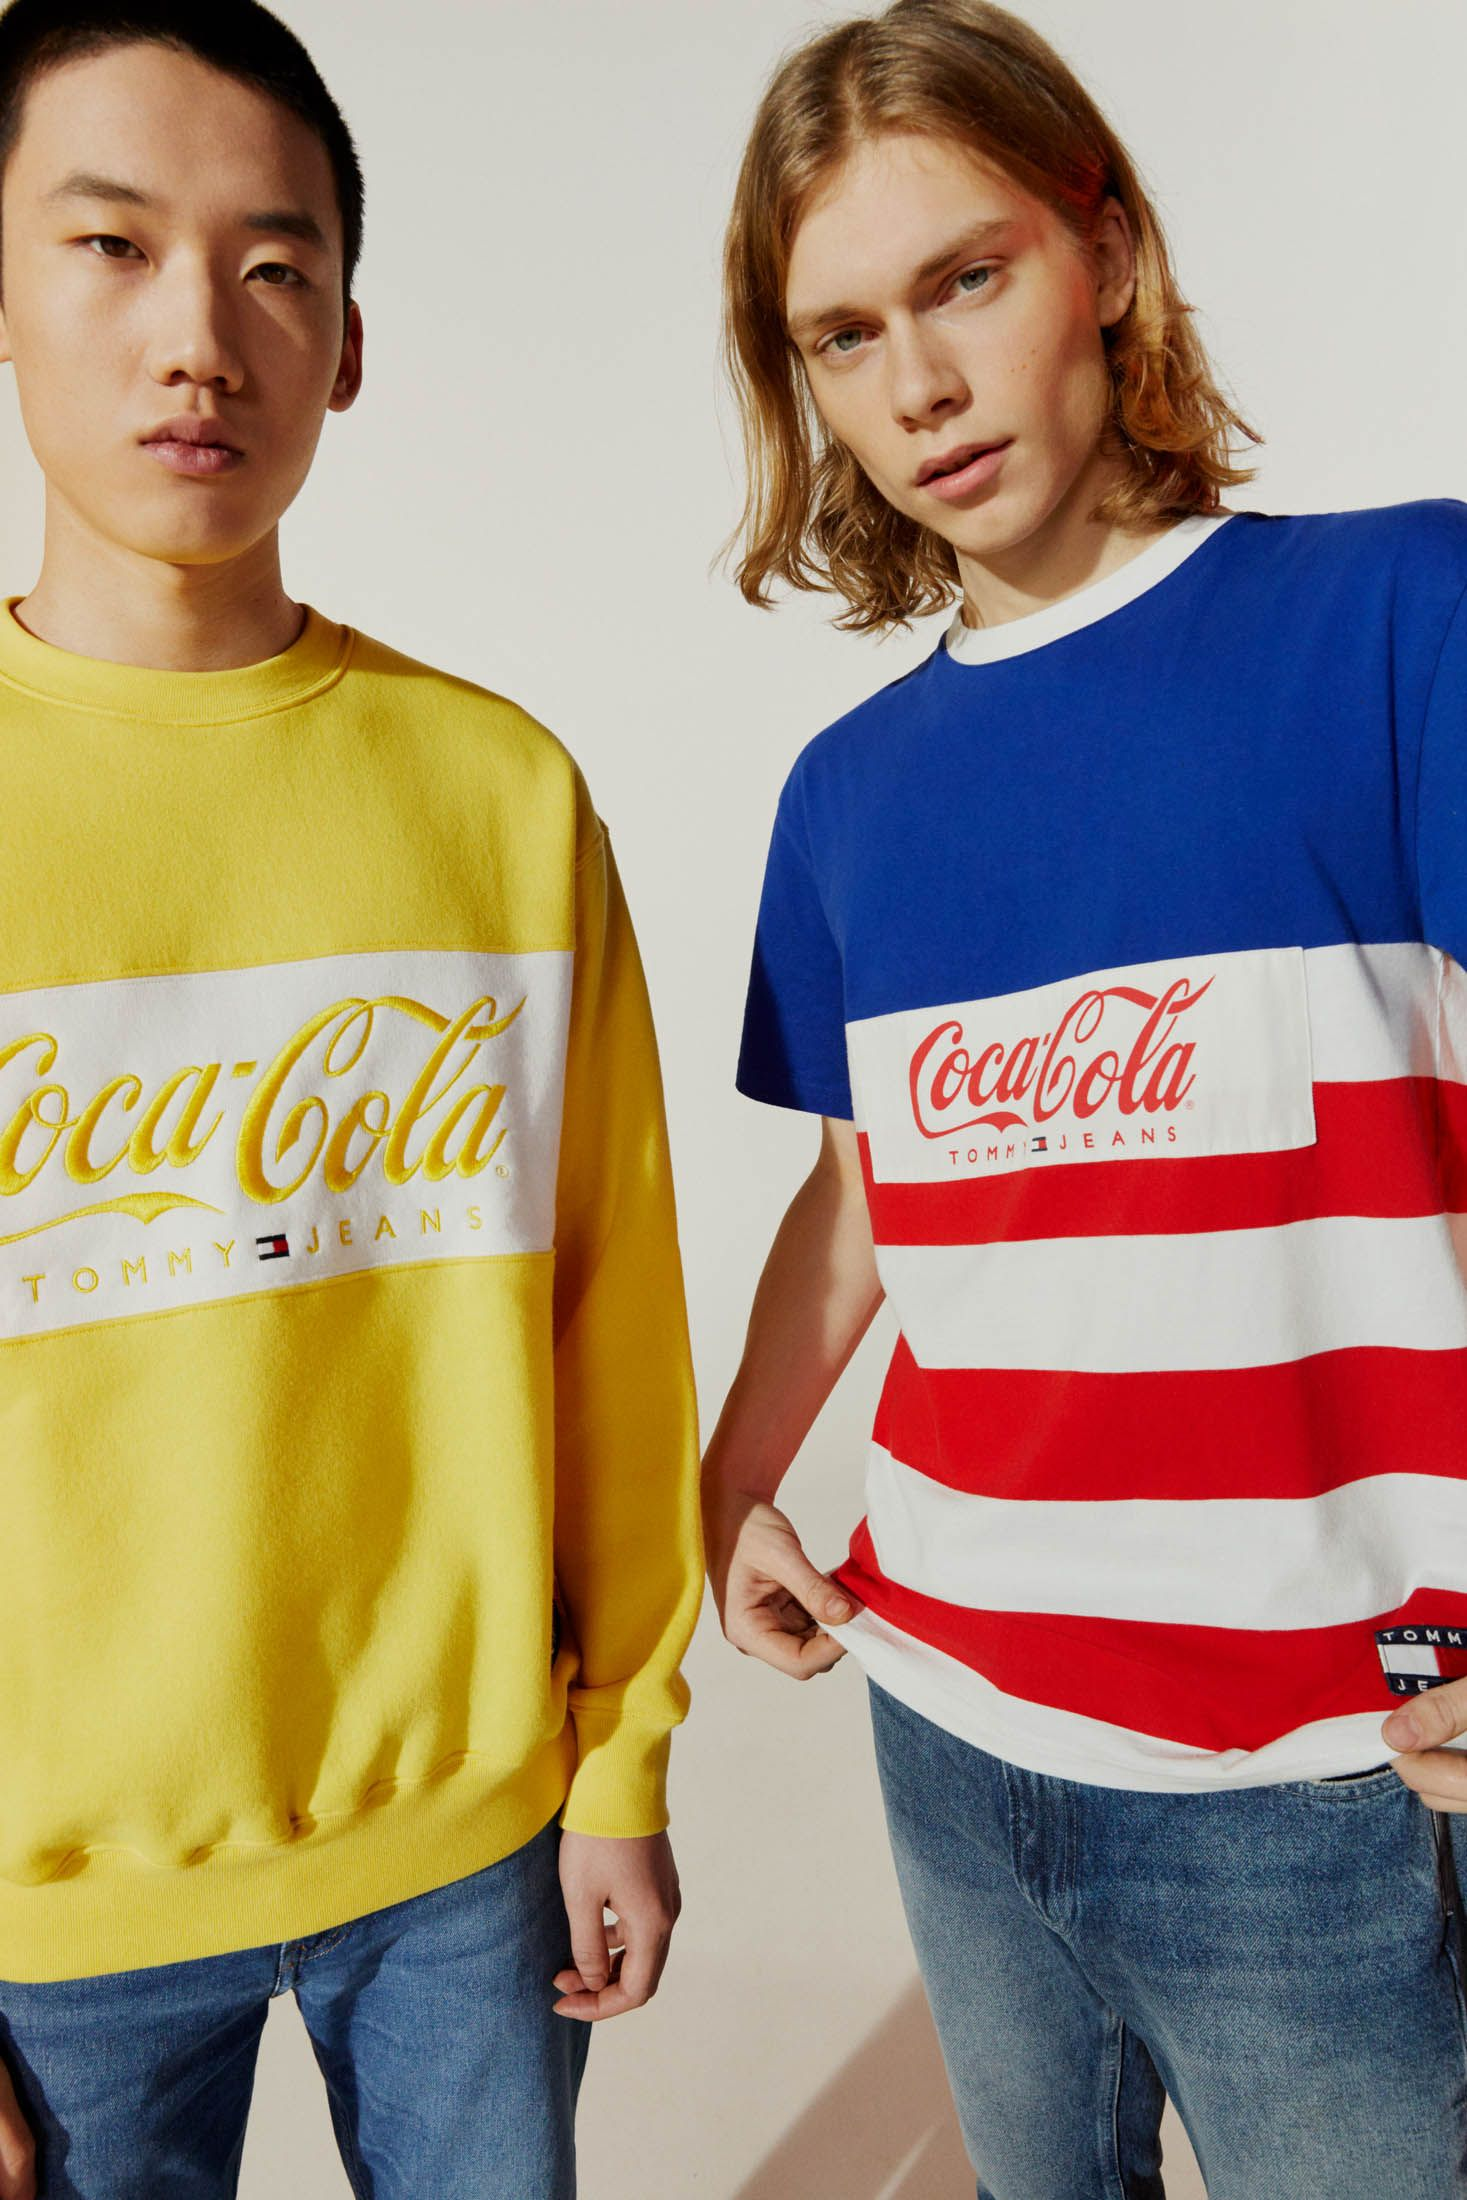 Tommy Hilfiger Coca Cola Sweatshirt Cool Throwback Old